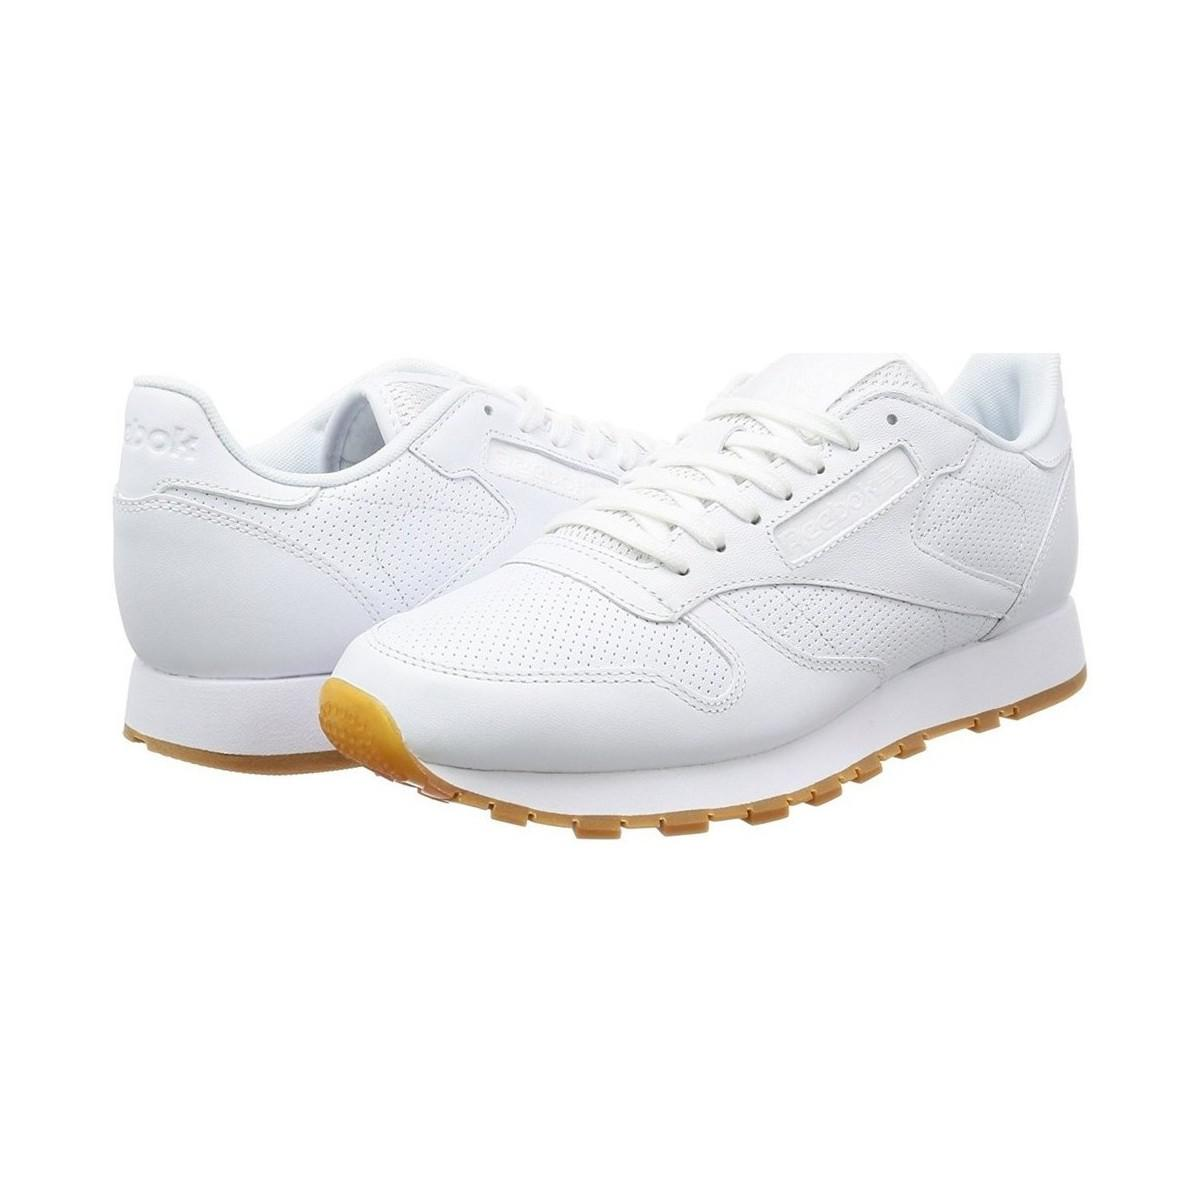 Reebok - Classic Leather Pg Men s Shoes (trainers) In White for Men - Lyst.  View fullscreen 9081a5382